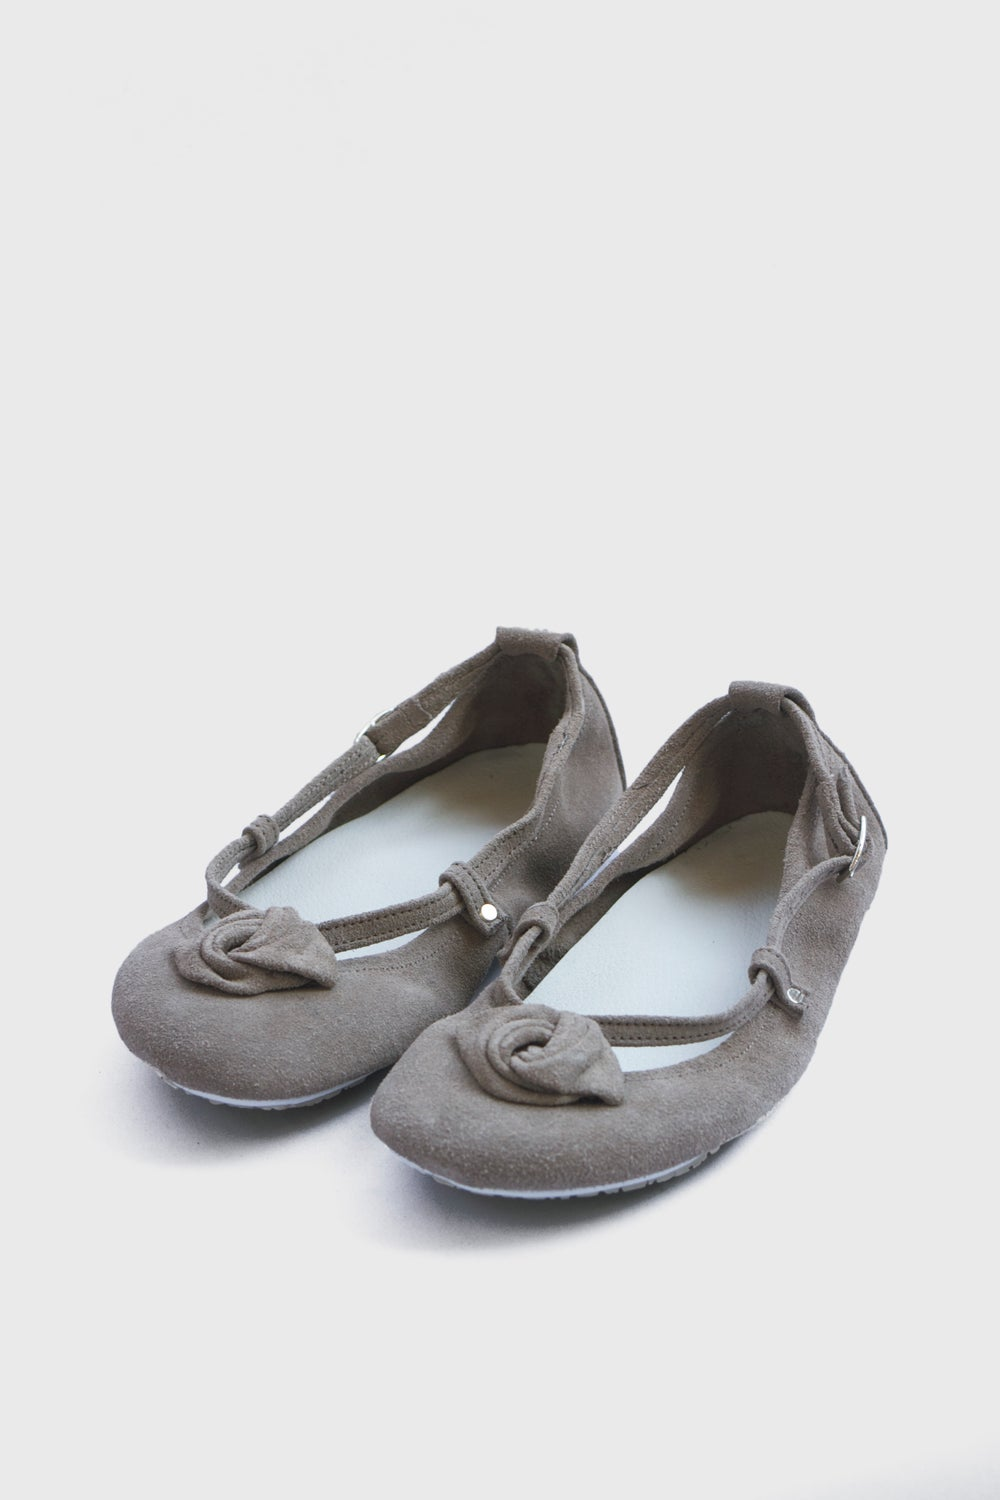 Image of Ballet Flats Foldable - Alert in Frost grey suede - 34 EU